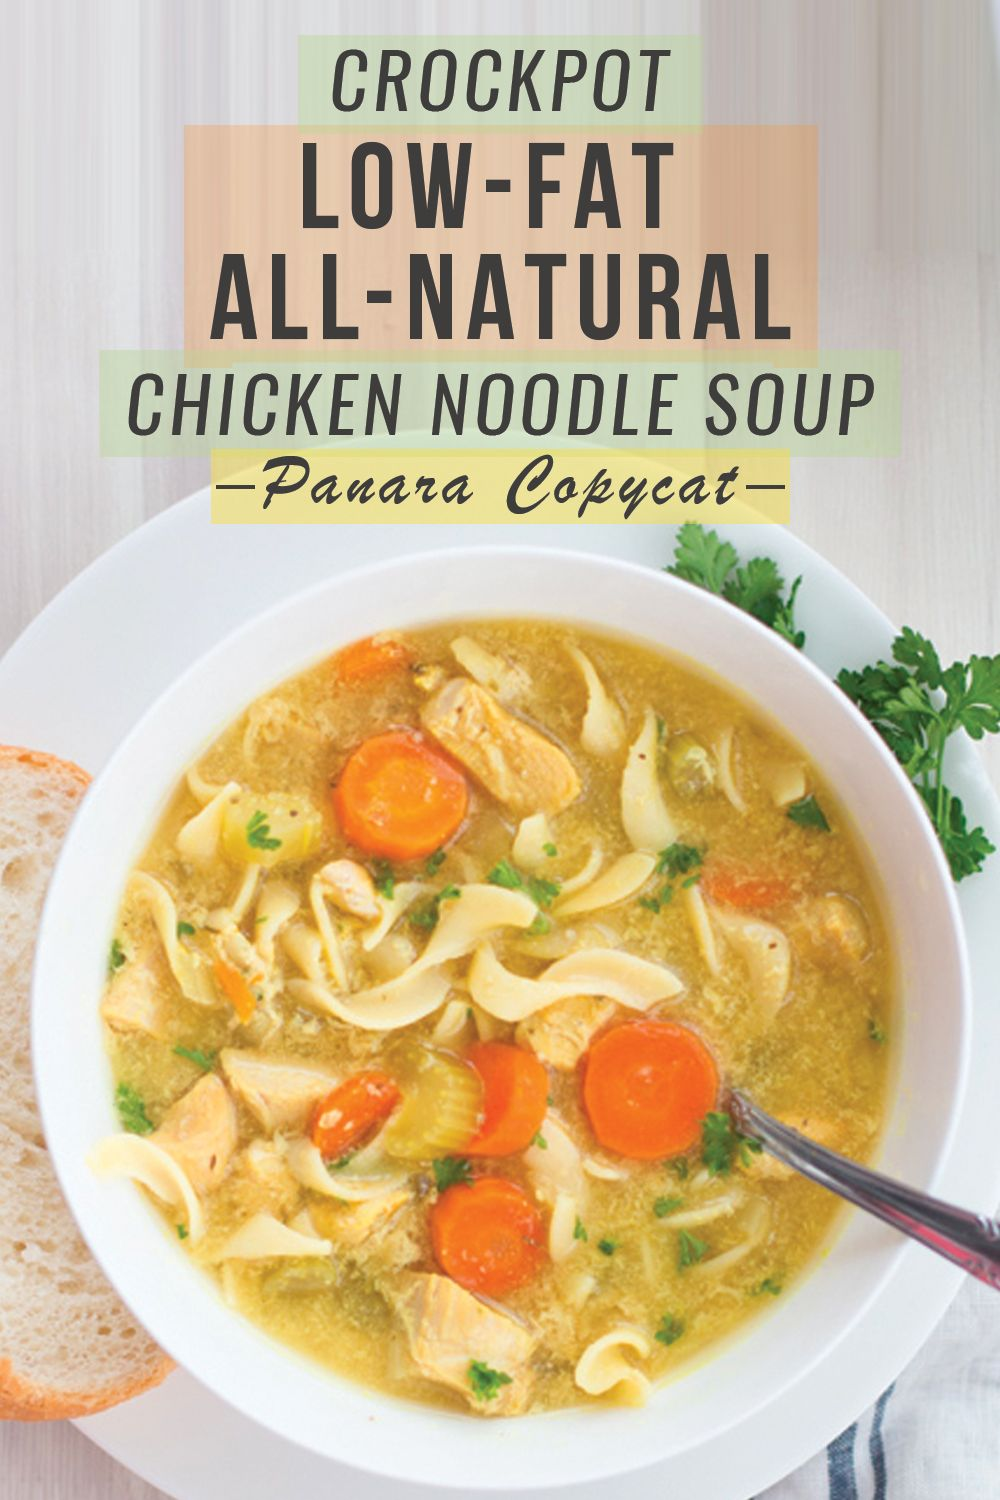 Crockpot Low-Fat All-Natural Chicken Noodle Soup